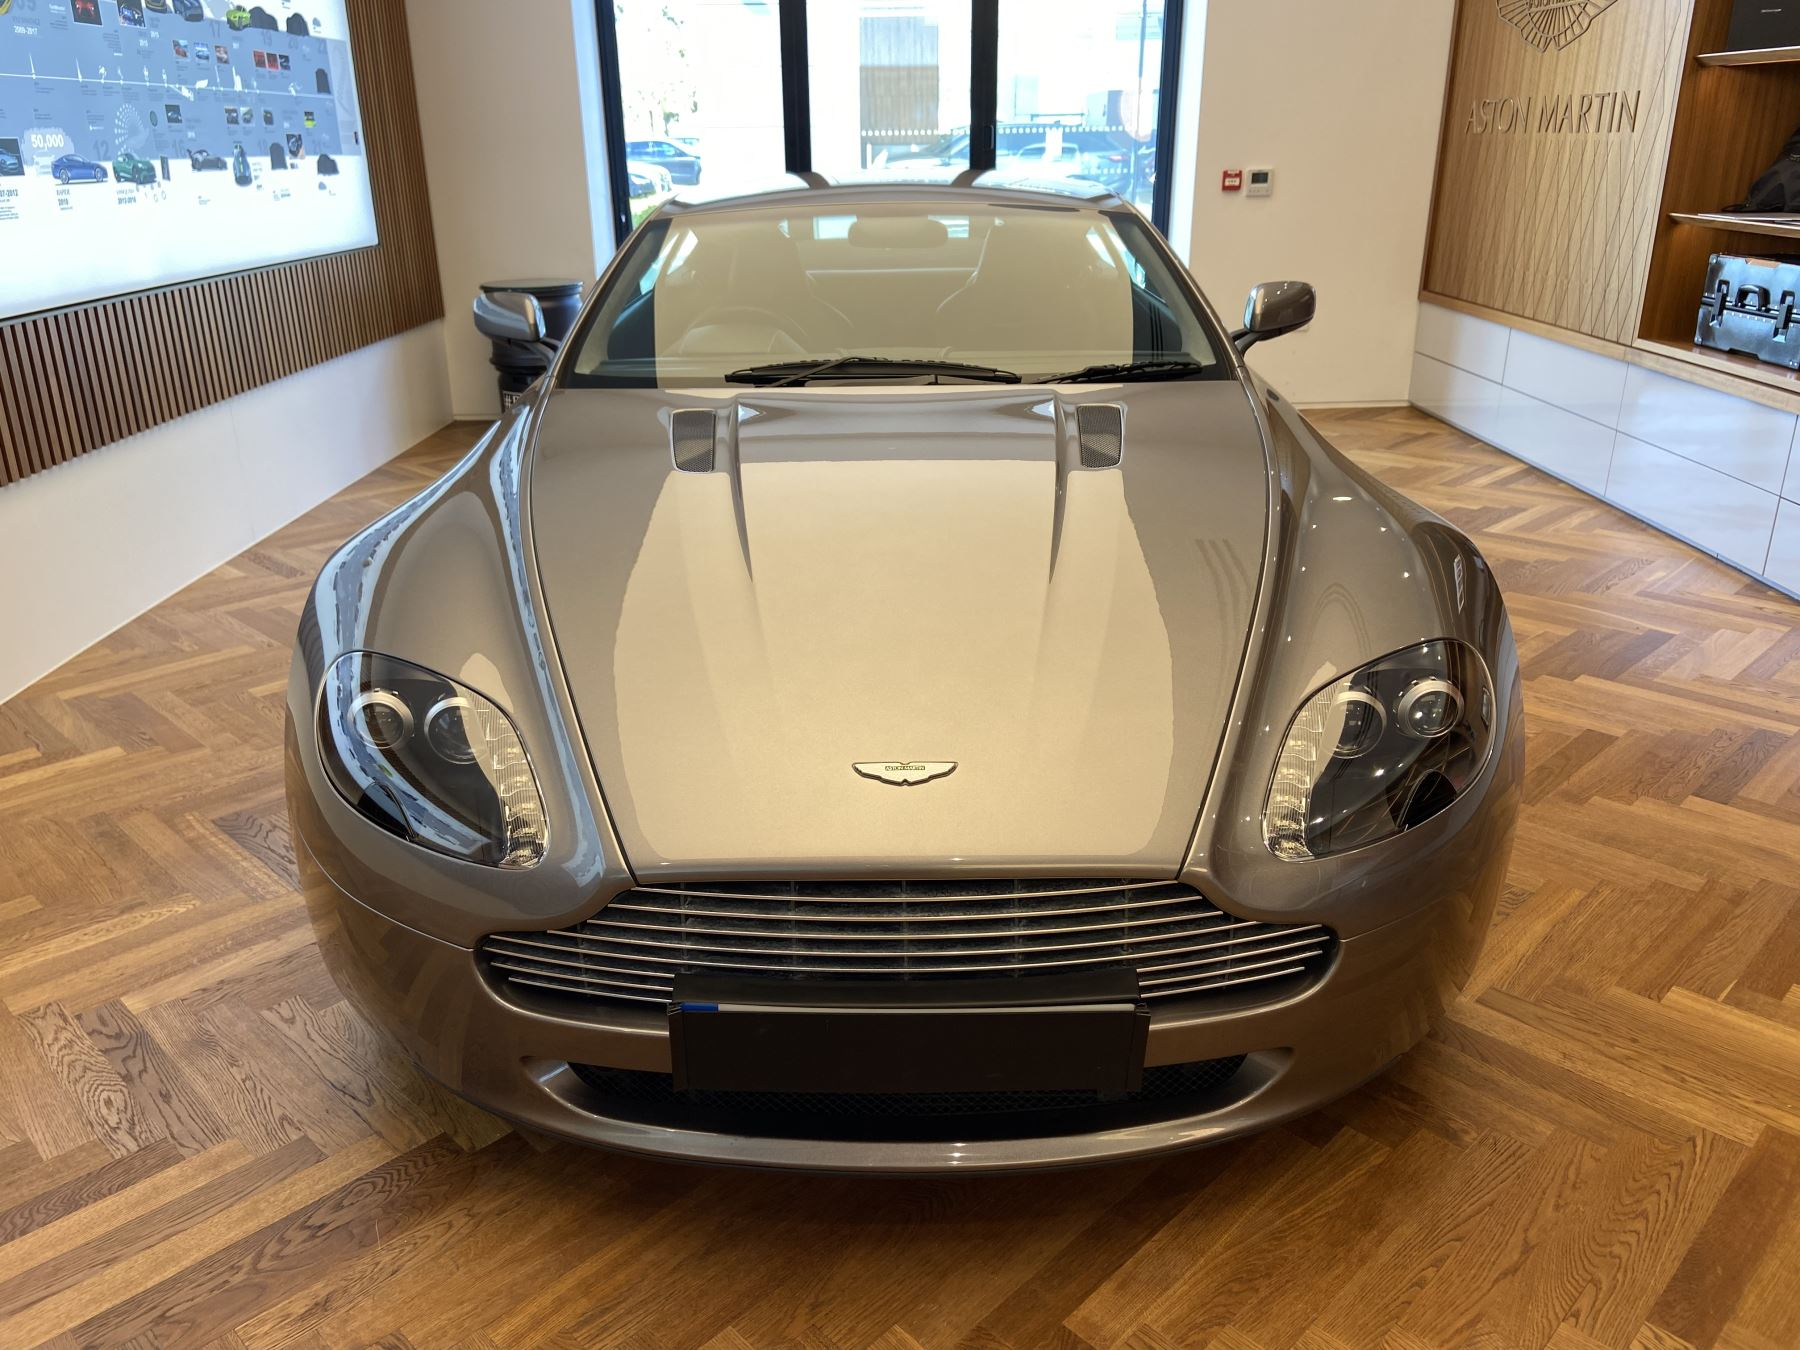 Aston Martin V8 Vantage 2dr 4.3 3 door Coupe